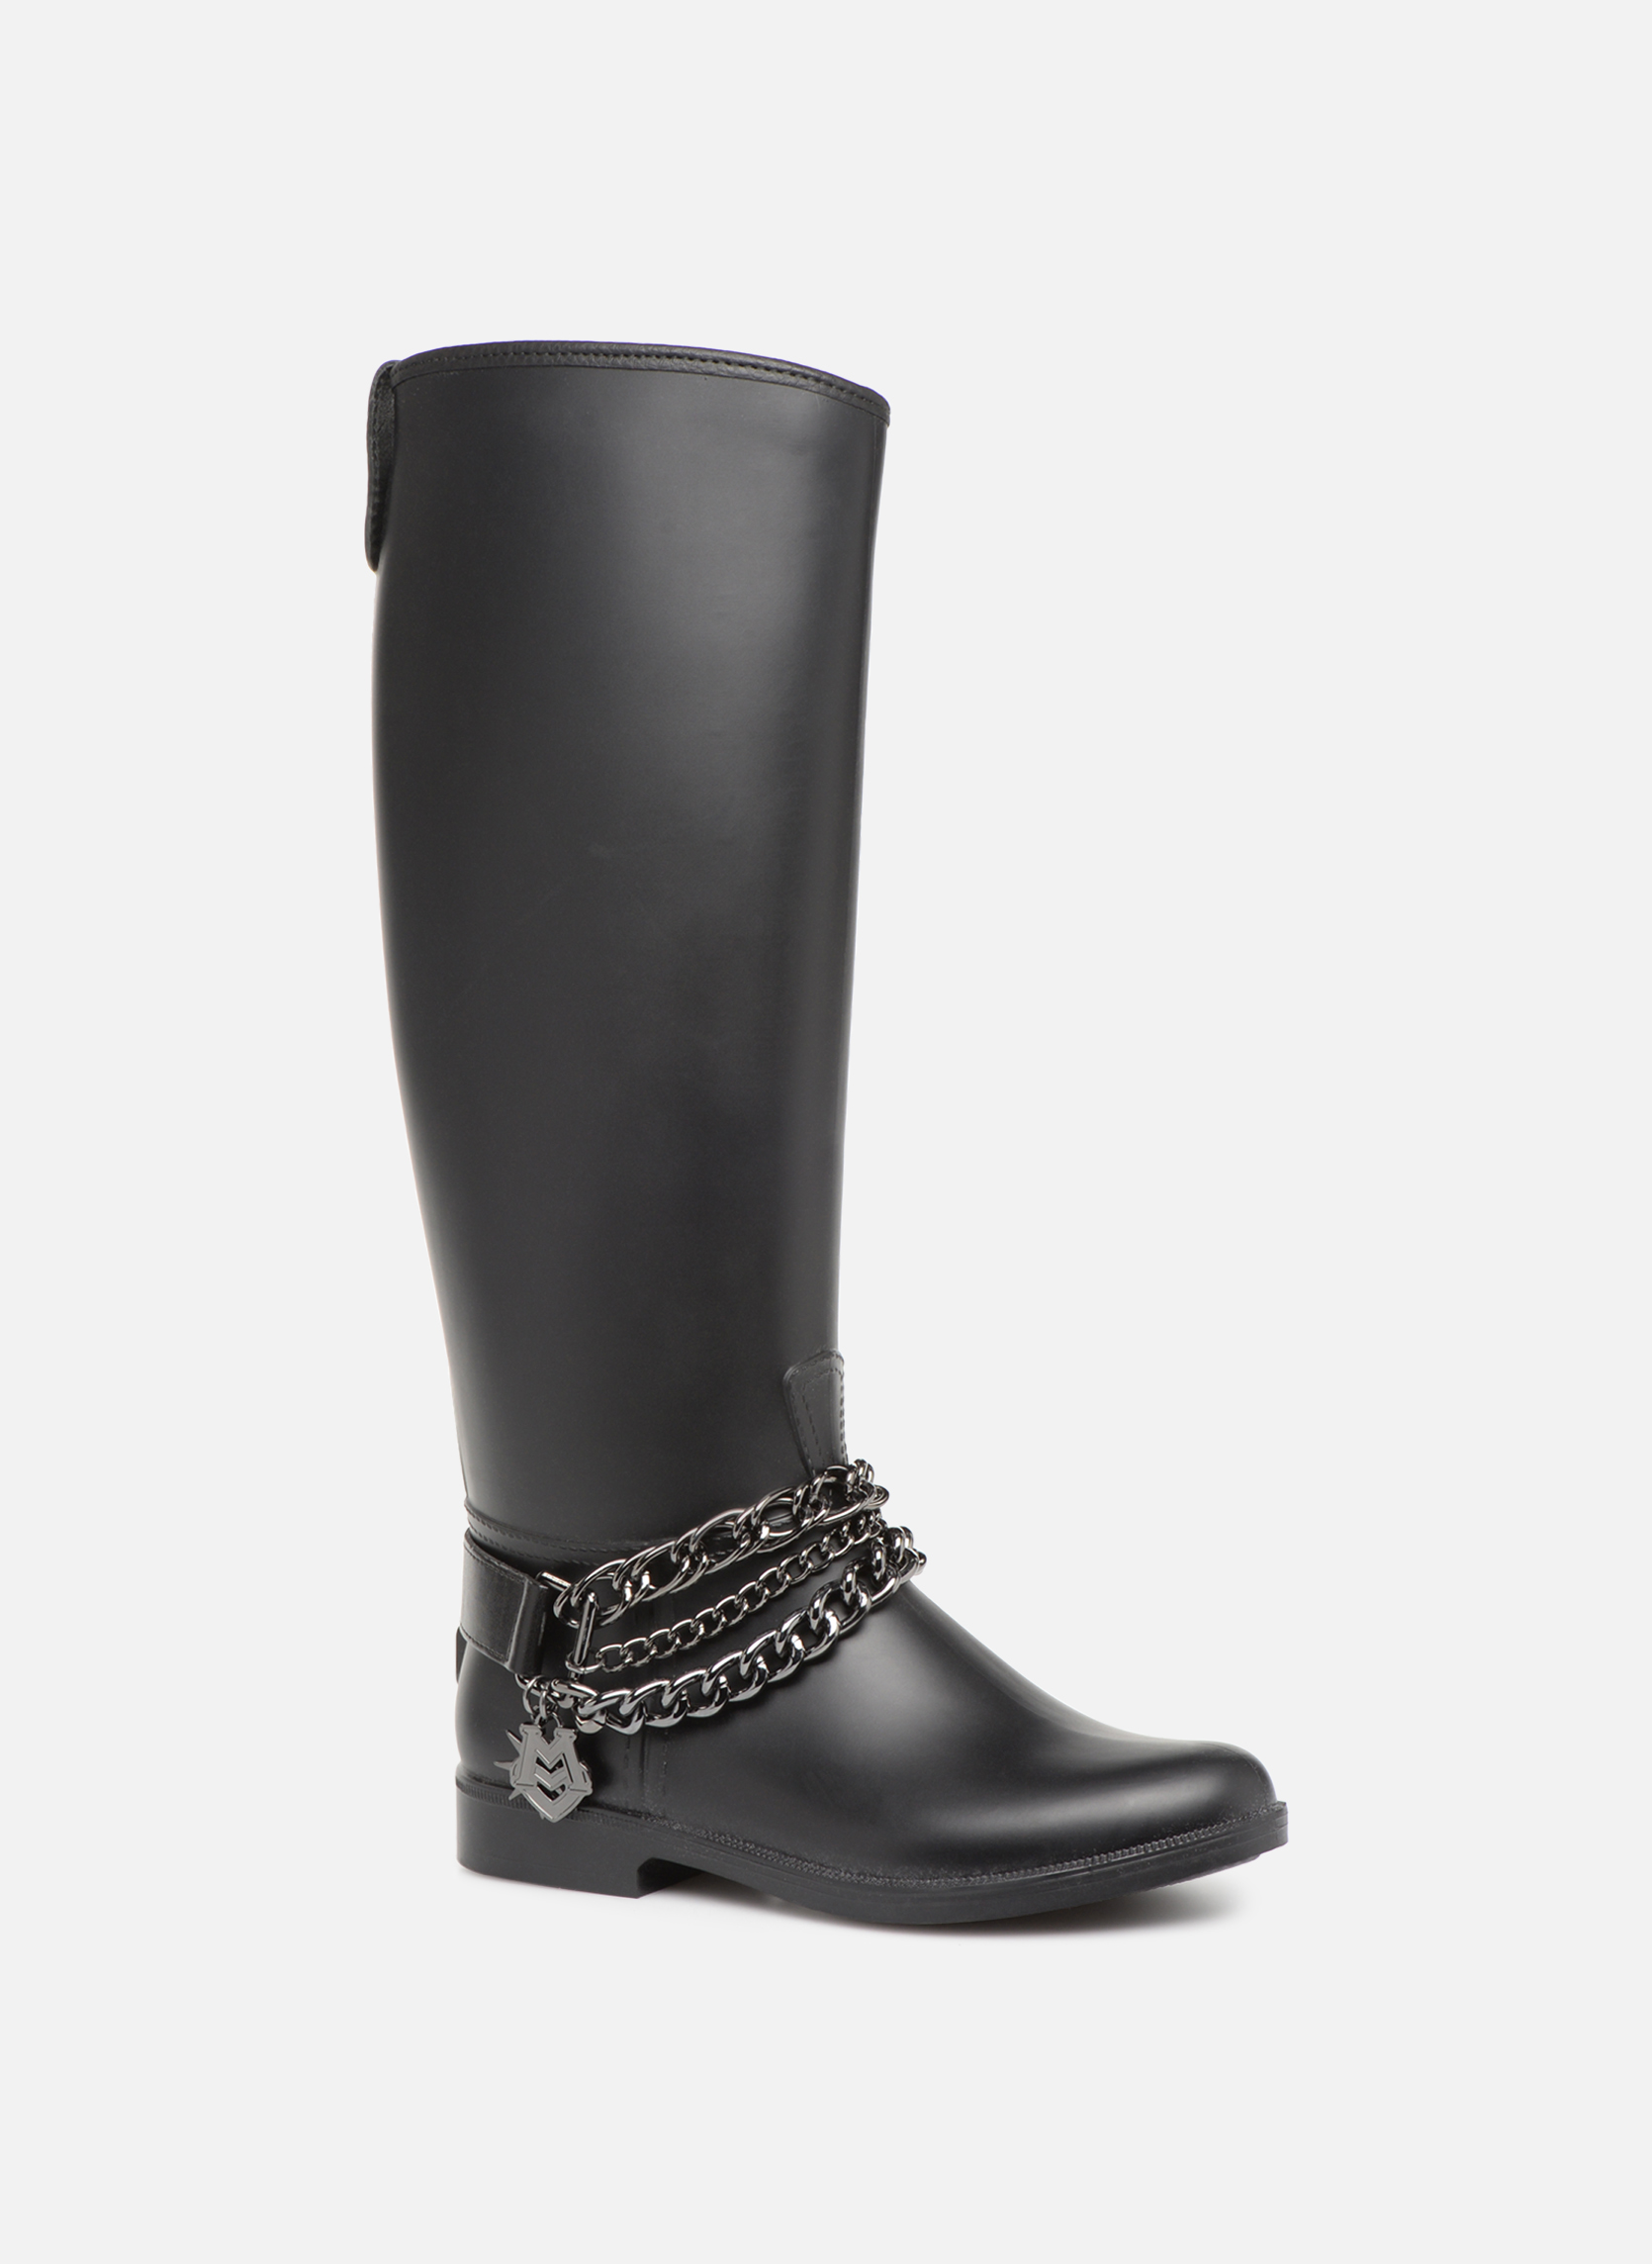 Stiefel Damen Rain chain boot